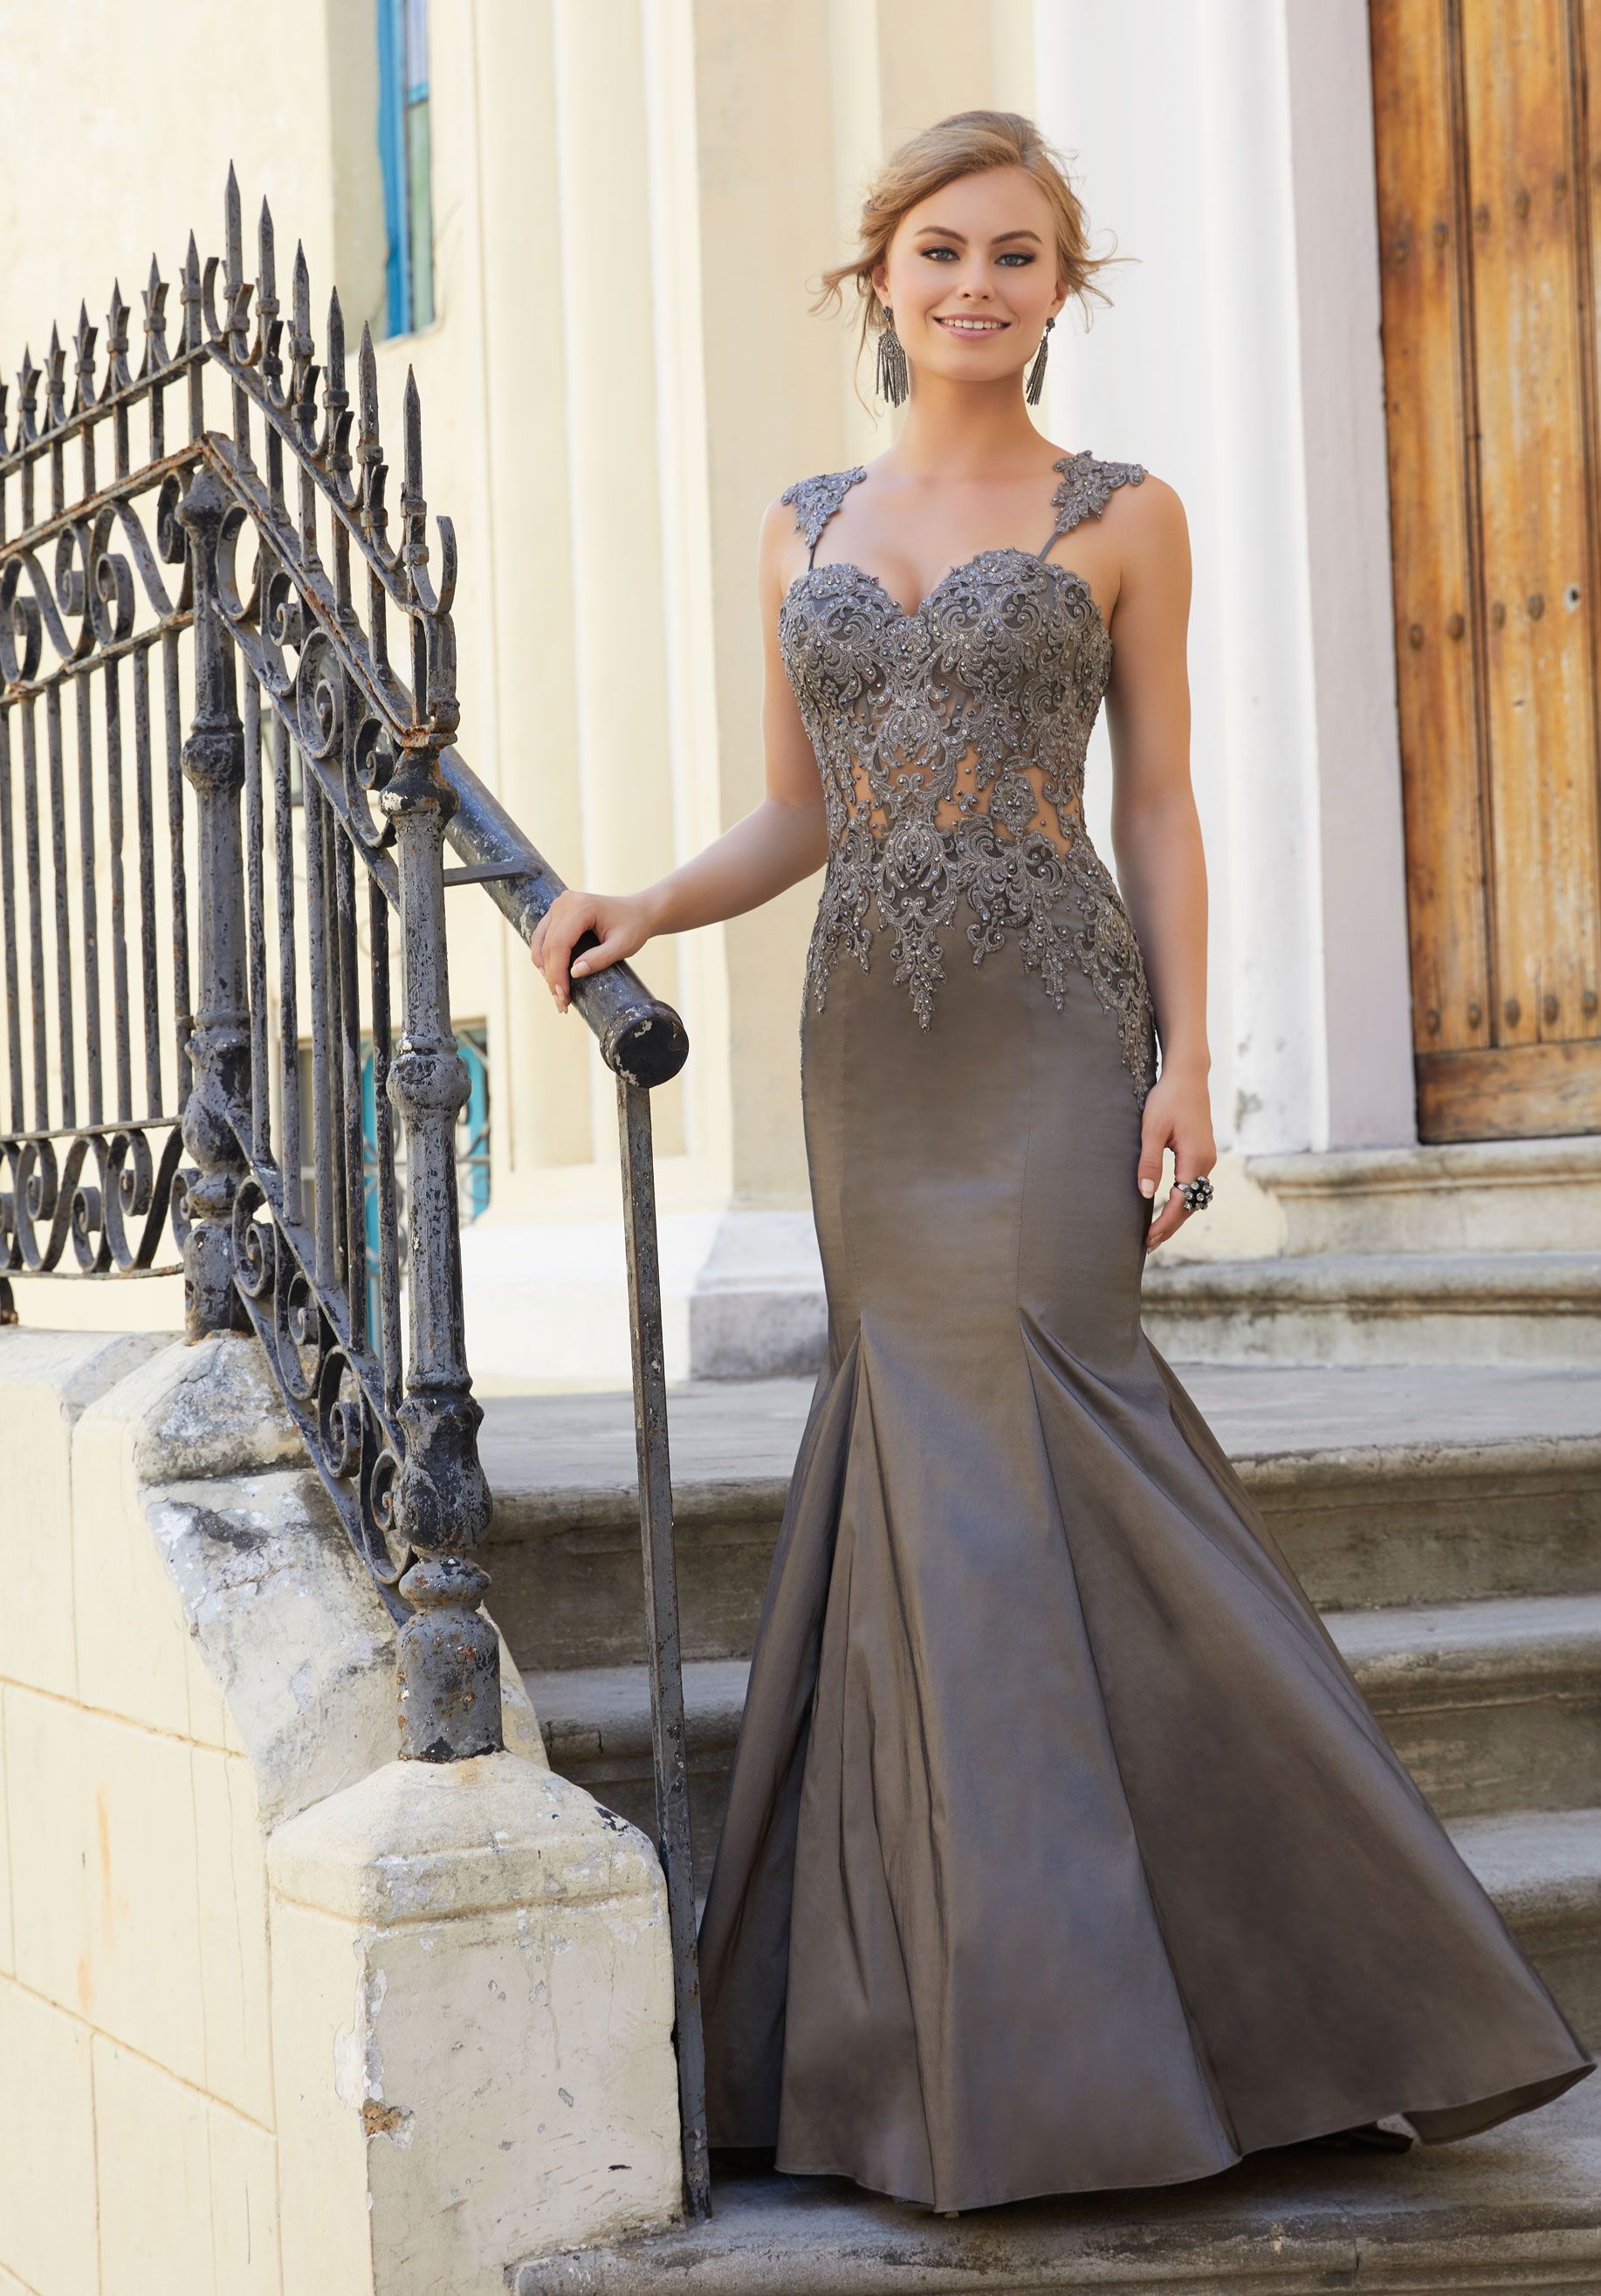 98fa4dc6f1 Sexy Strech Taffeta Prom Dress Featuring a Sheer Boned Bodice with Beaded  Lace Straps Prom Dresses